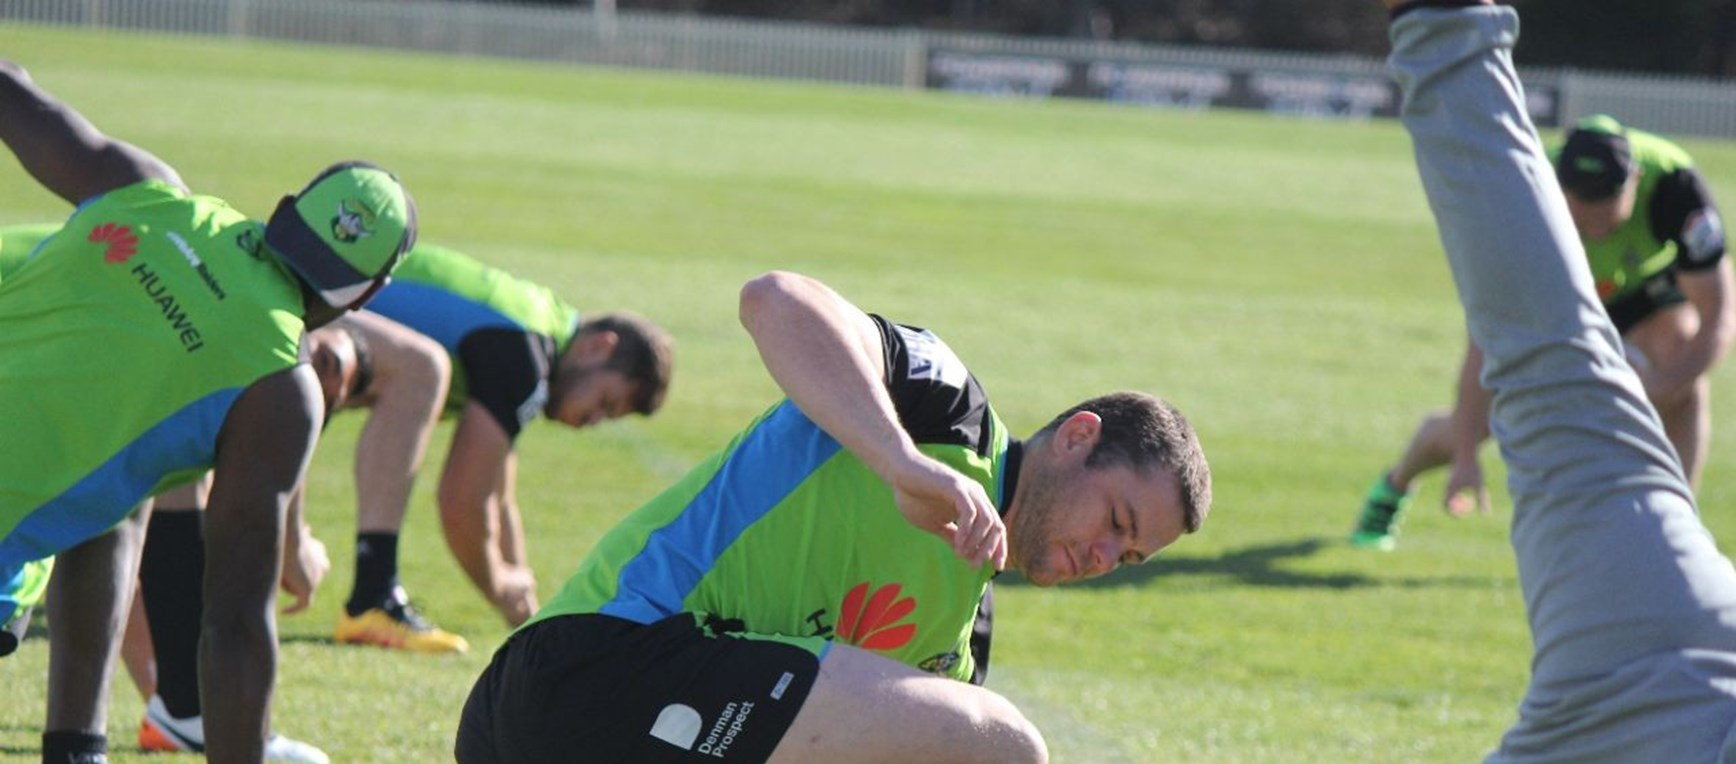 Gallery: Raiders stretch out before jetting off